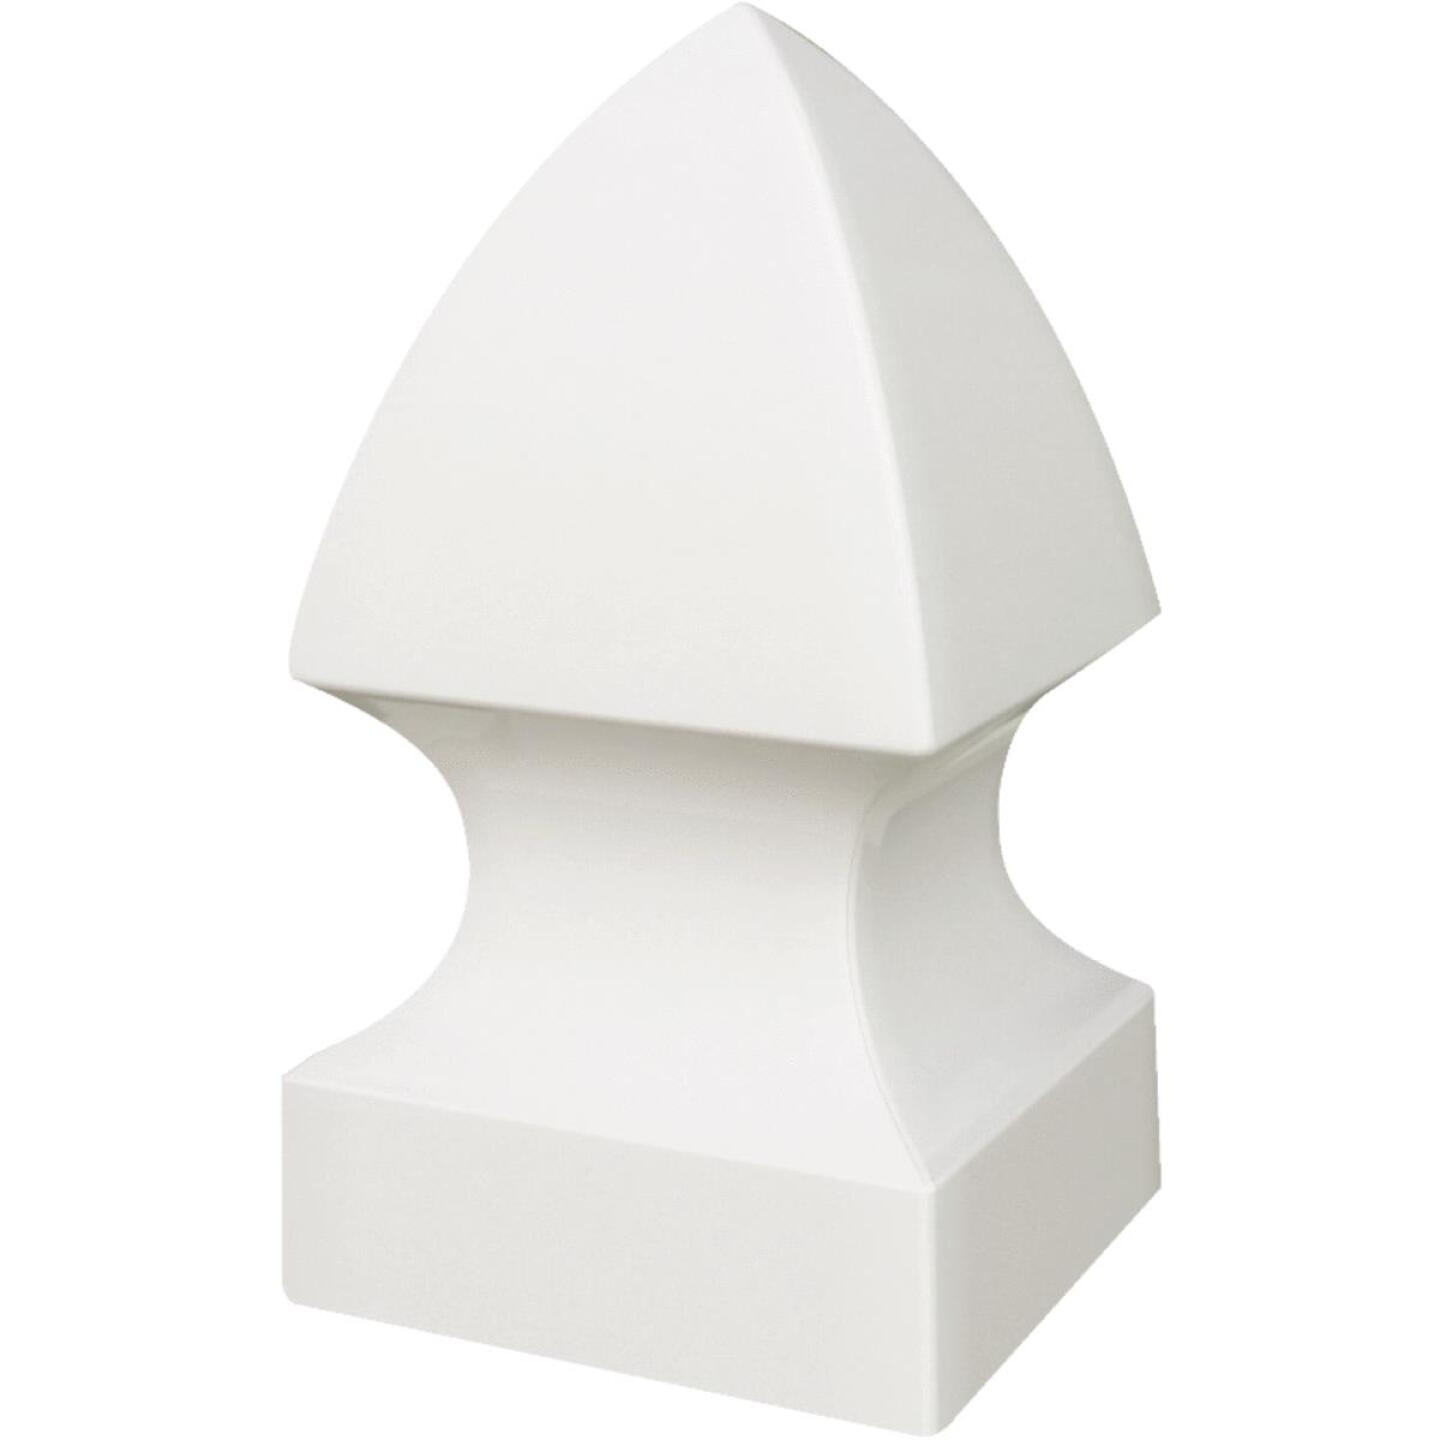 Outdoor Essentials 4 In. x 4 In. White Gothic Vinyl Post Cap Image 2